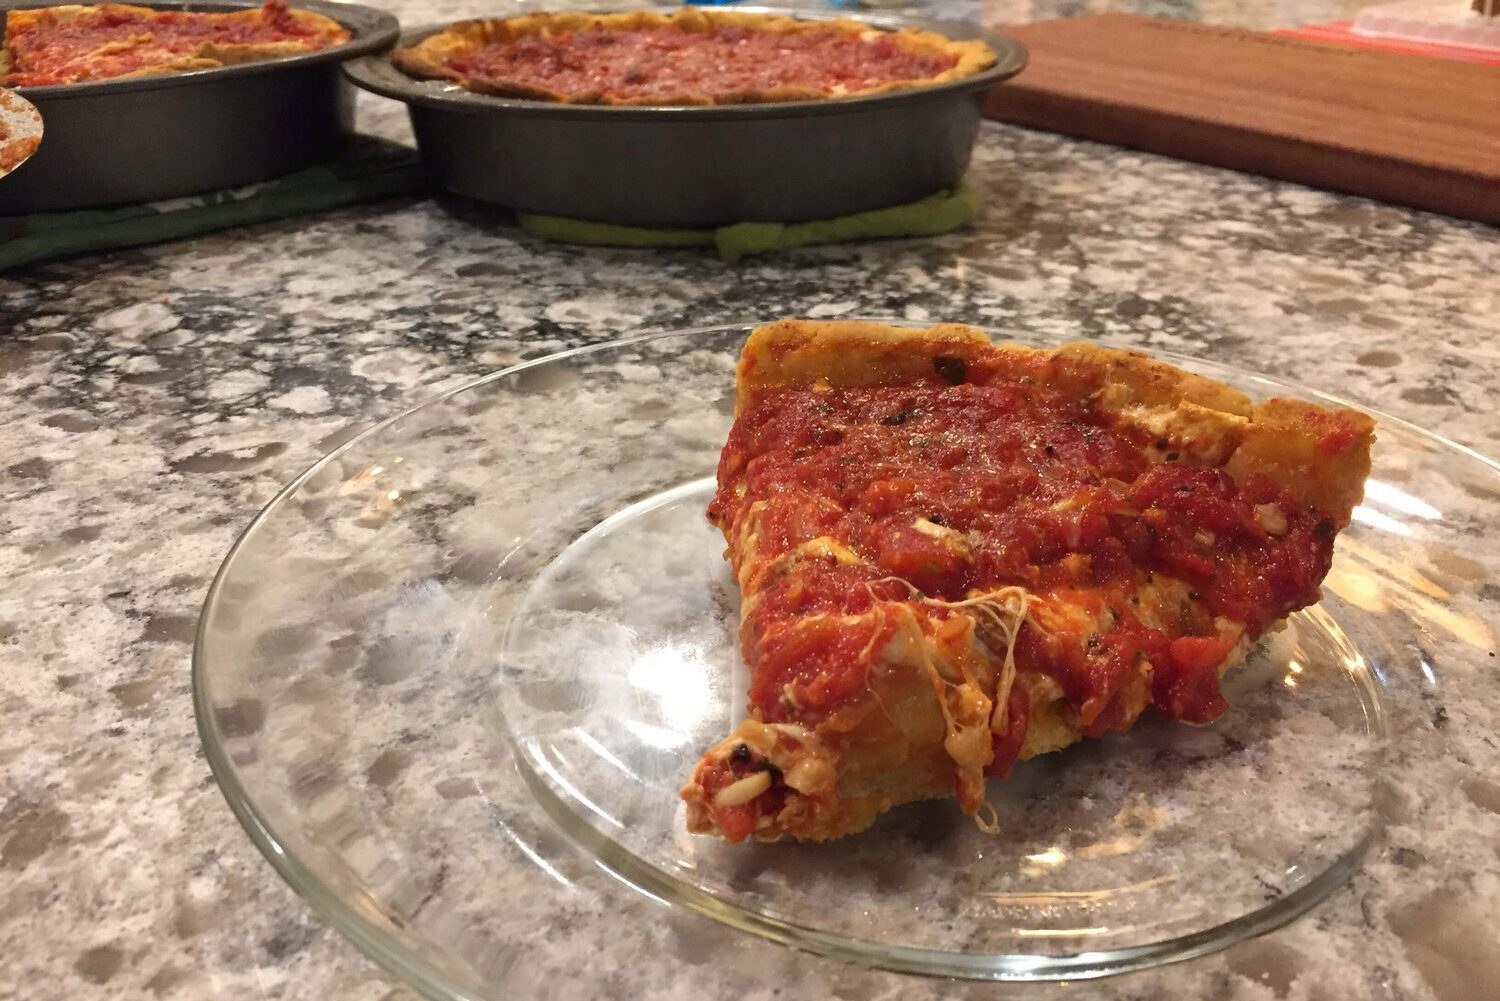 Ginos East Deep Dish Pizza Imitation Recipe